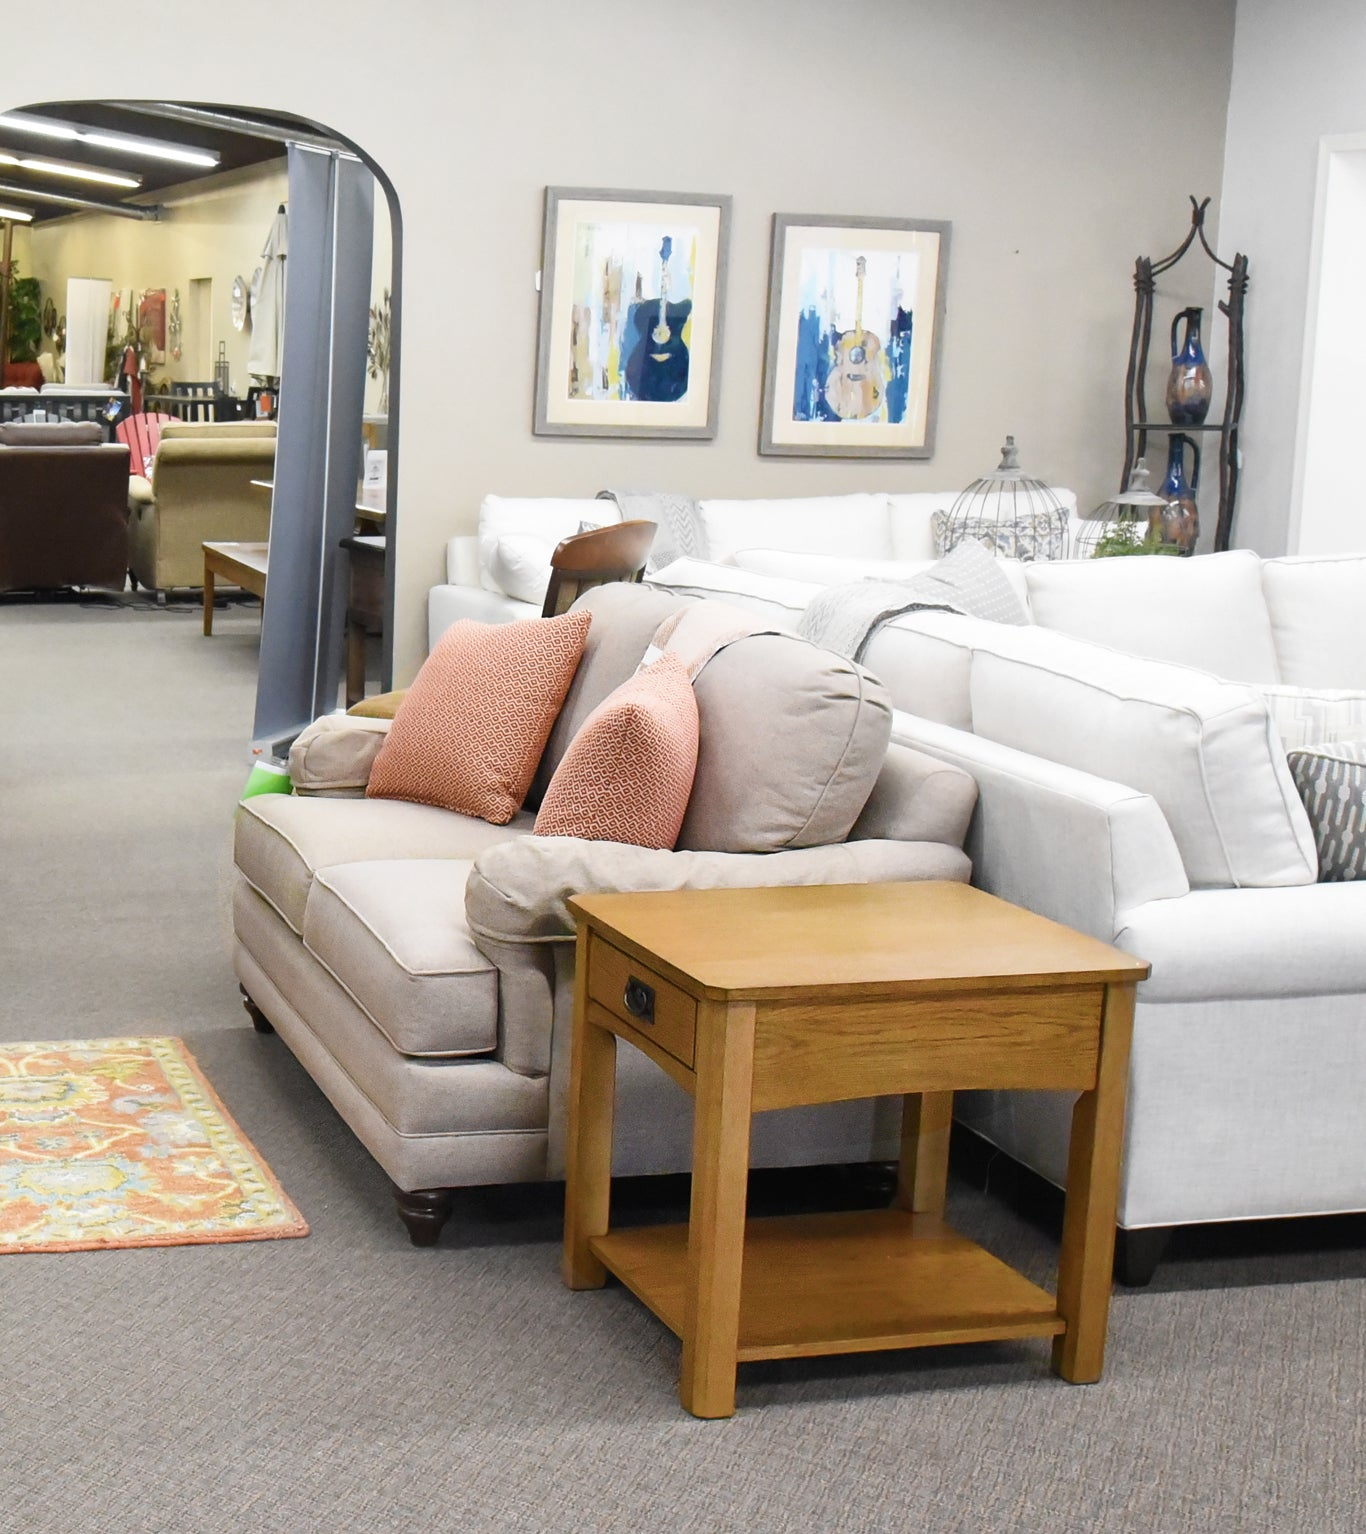 Home Furniture Clearance At Jacobs Custom Living Spokane Wa Furniture Store Spokane Jacobs Custom Living